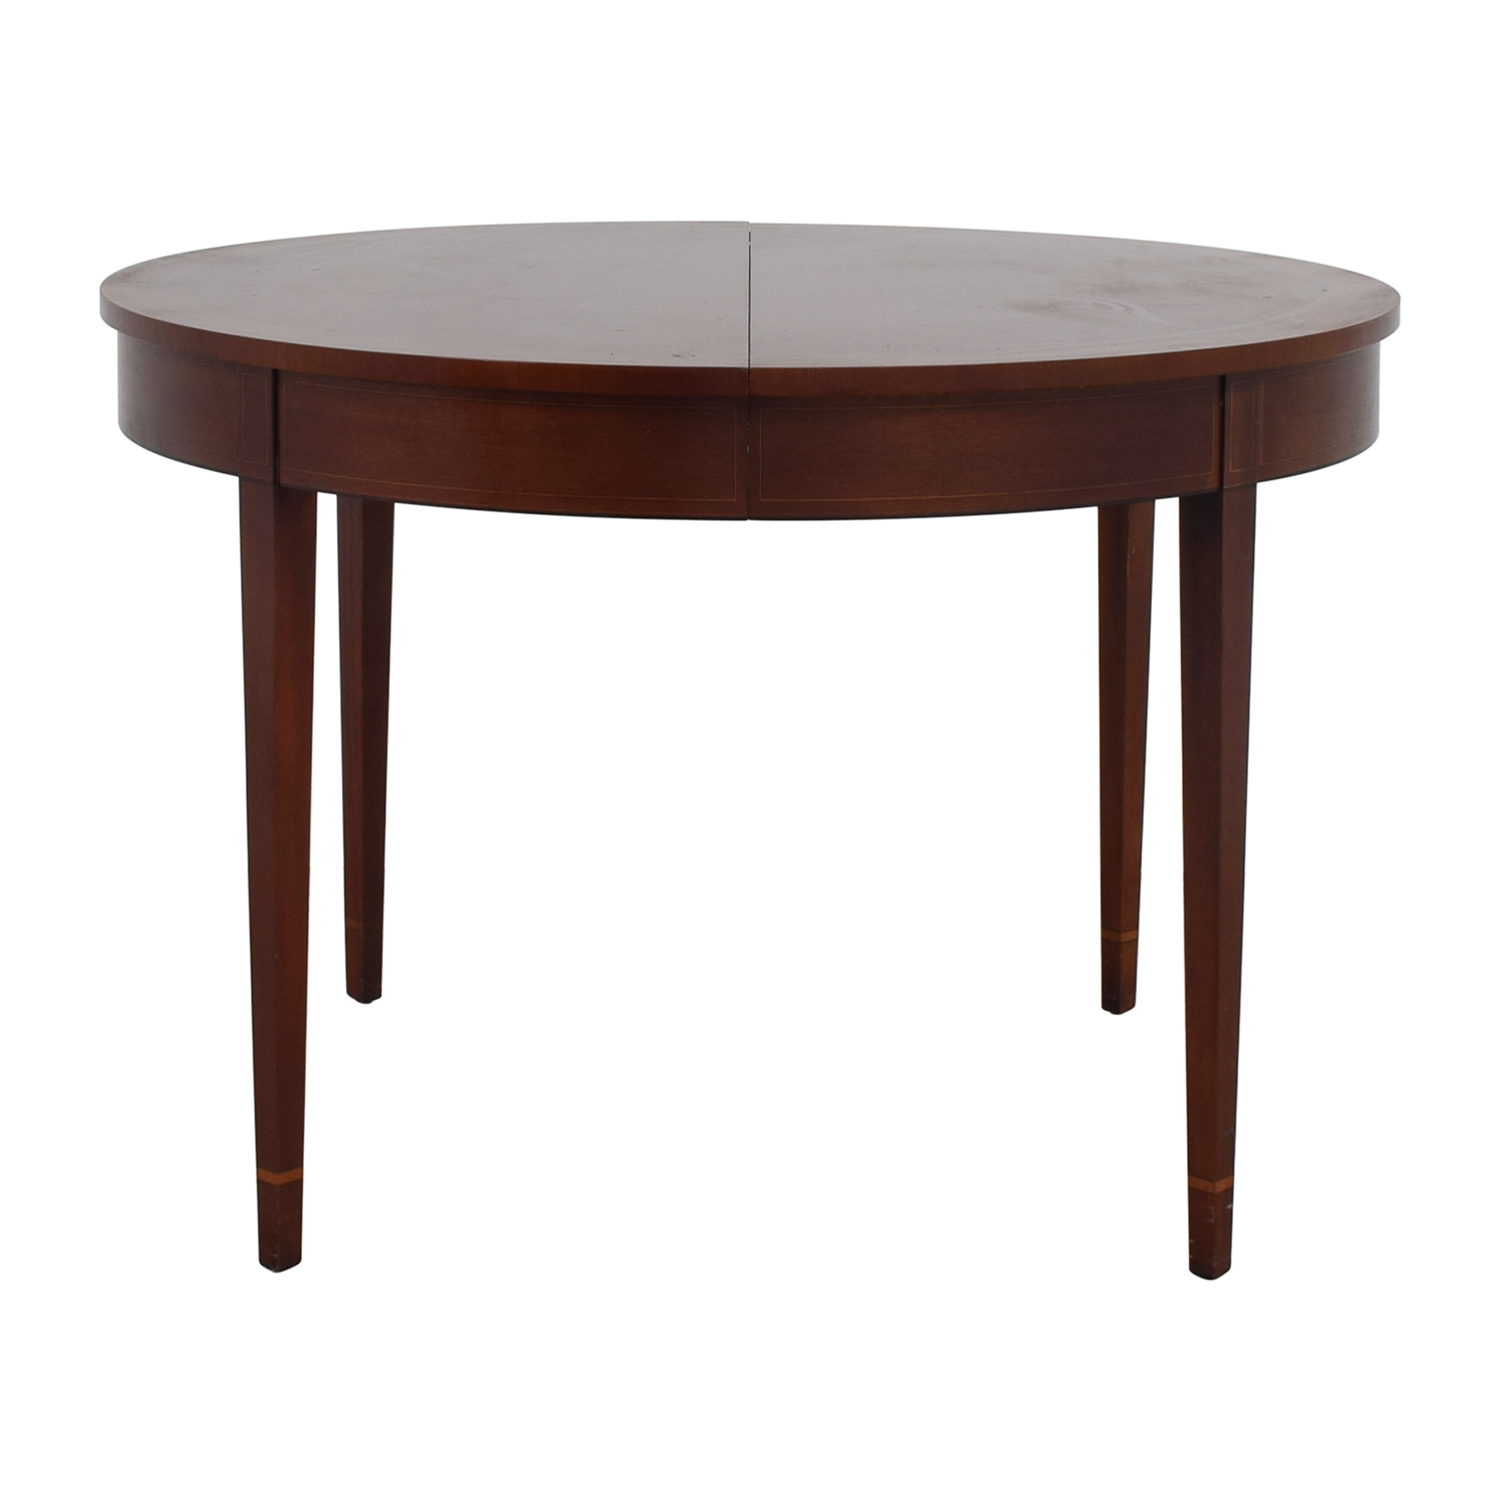 Stickley Stickley HIC 8301-40 Round Wood Table used